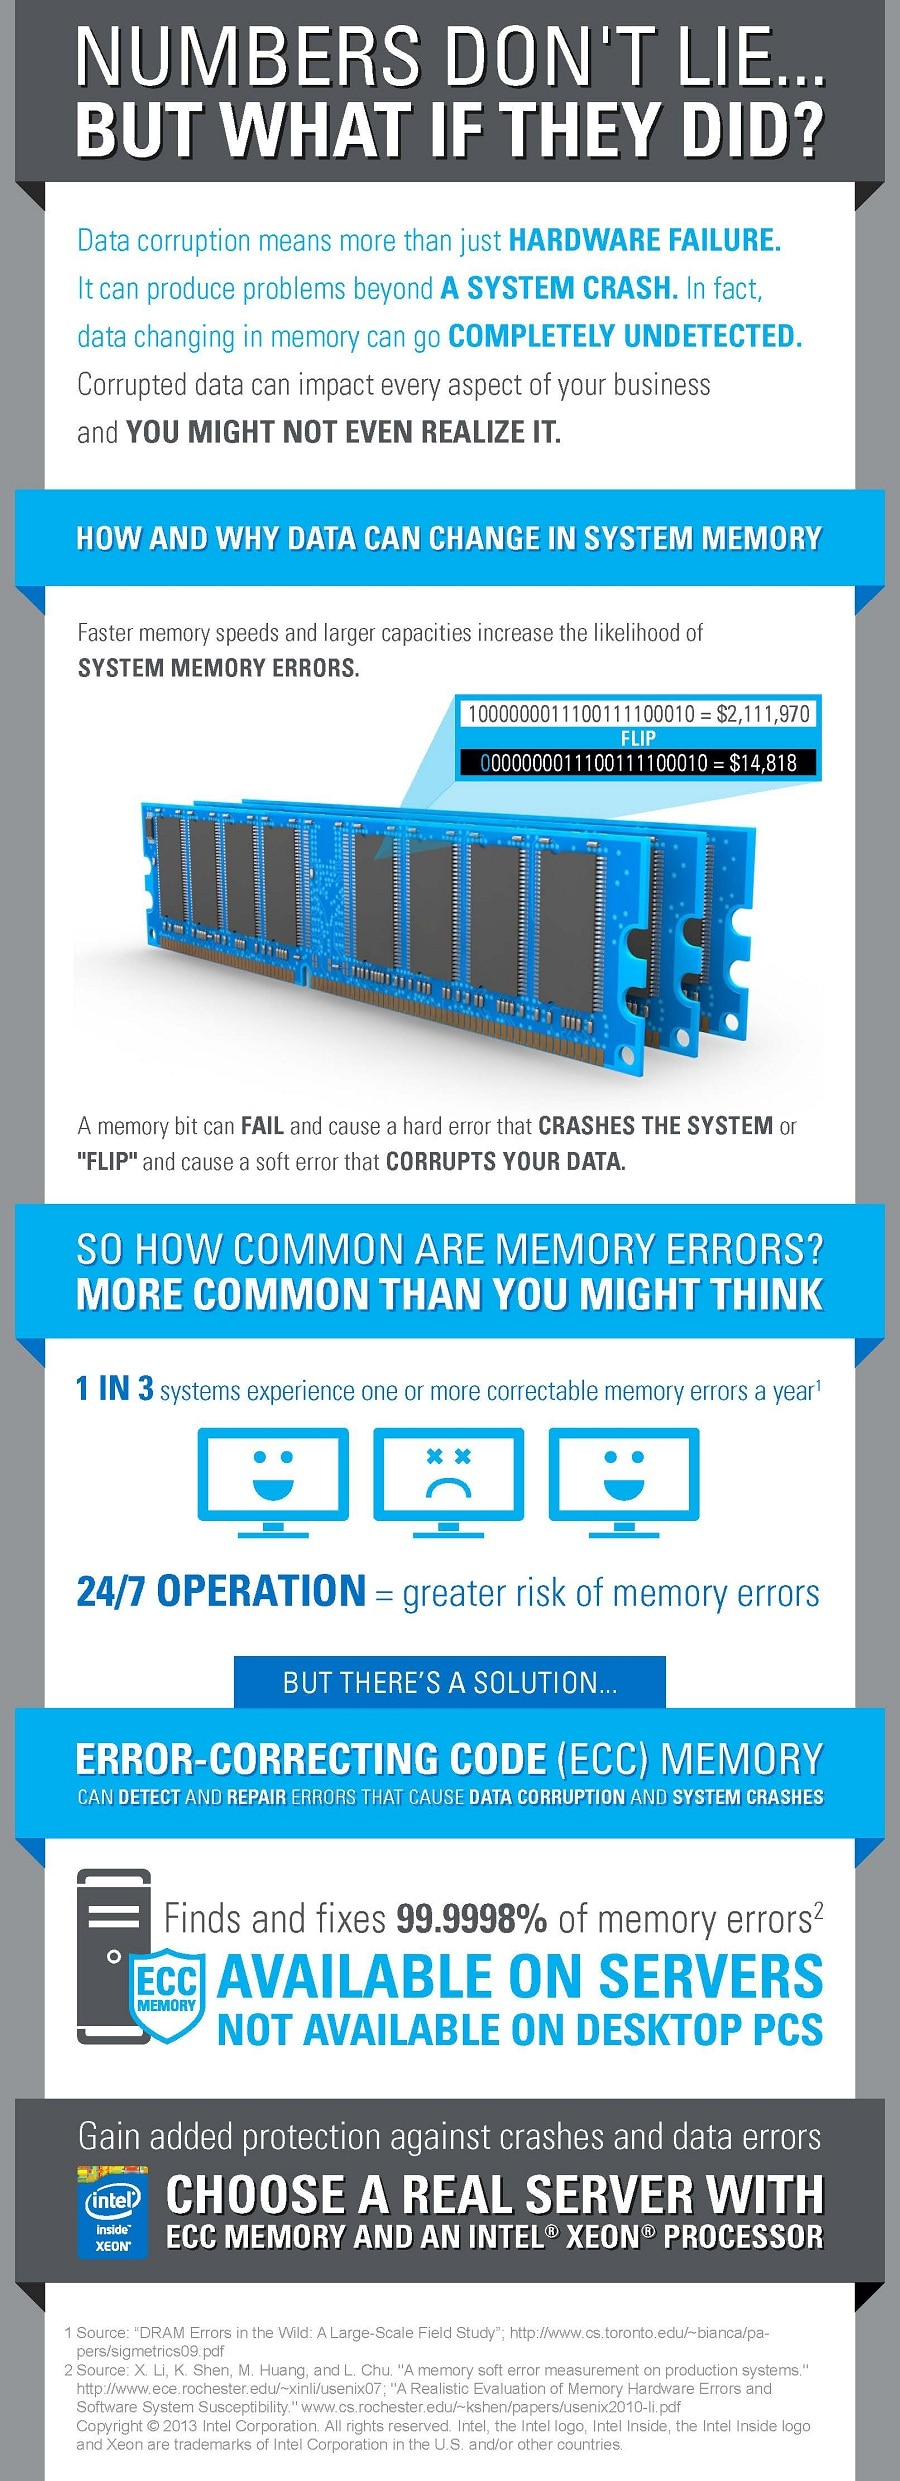 Intel® Xeon® Processor Error-Correcting Code Memory: Infographic